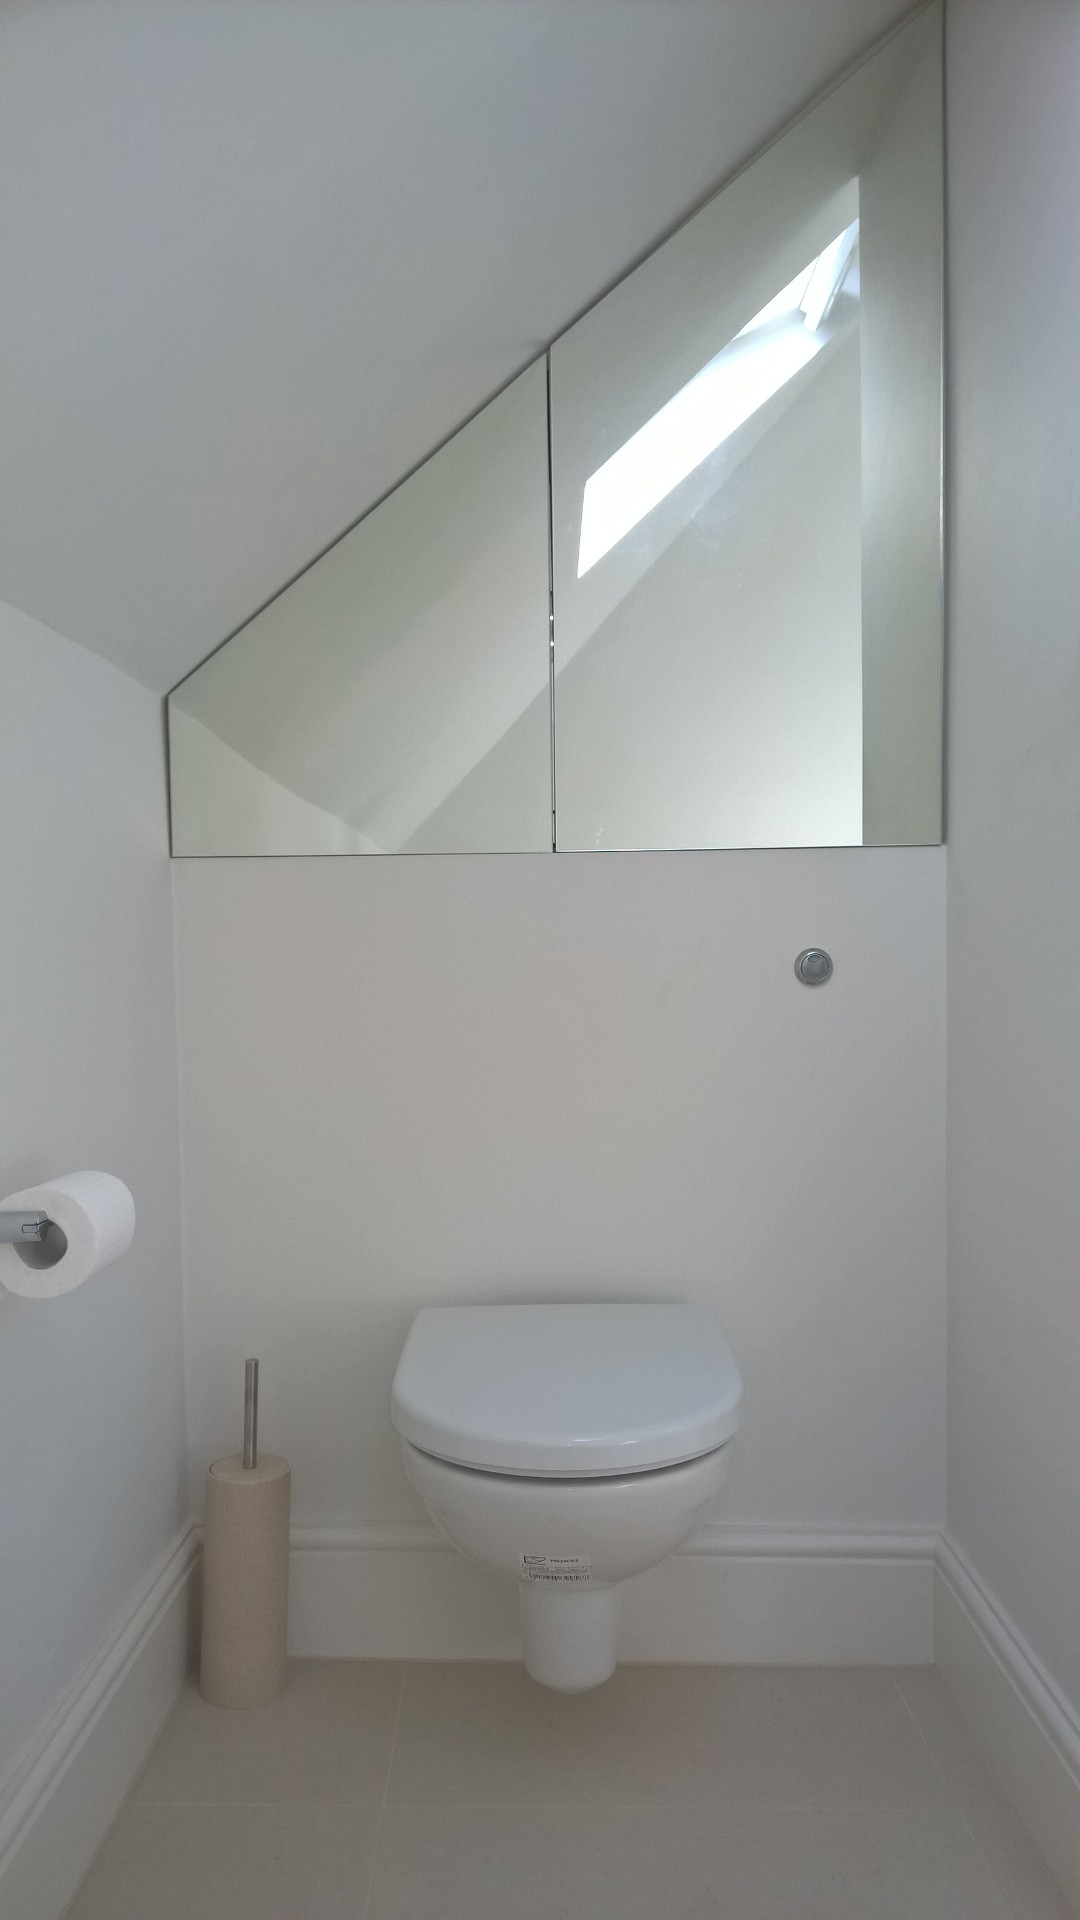 Bespoke mirror cabinets above a wall hung WC in an attic bathroom